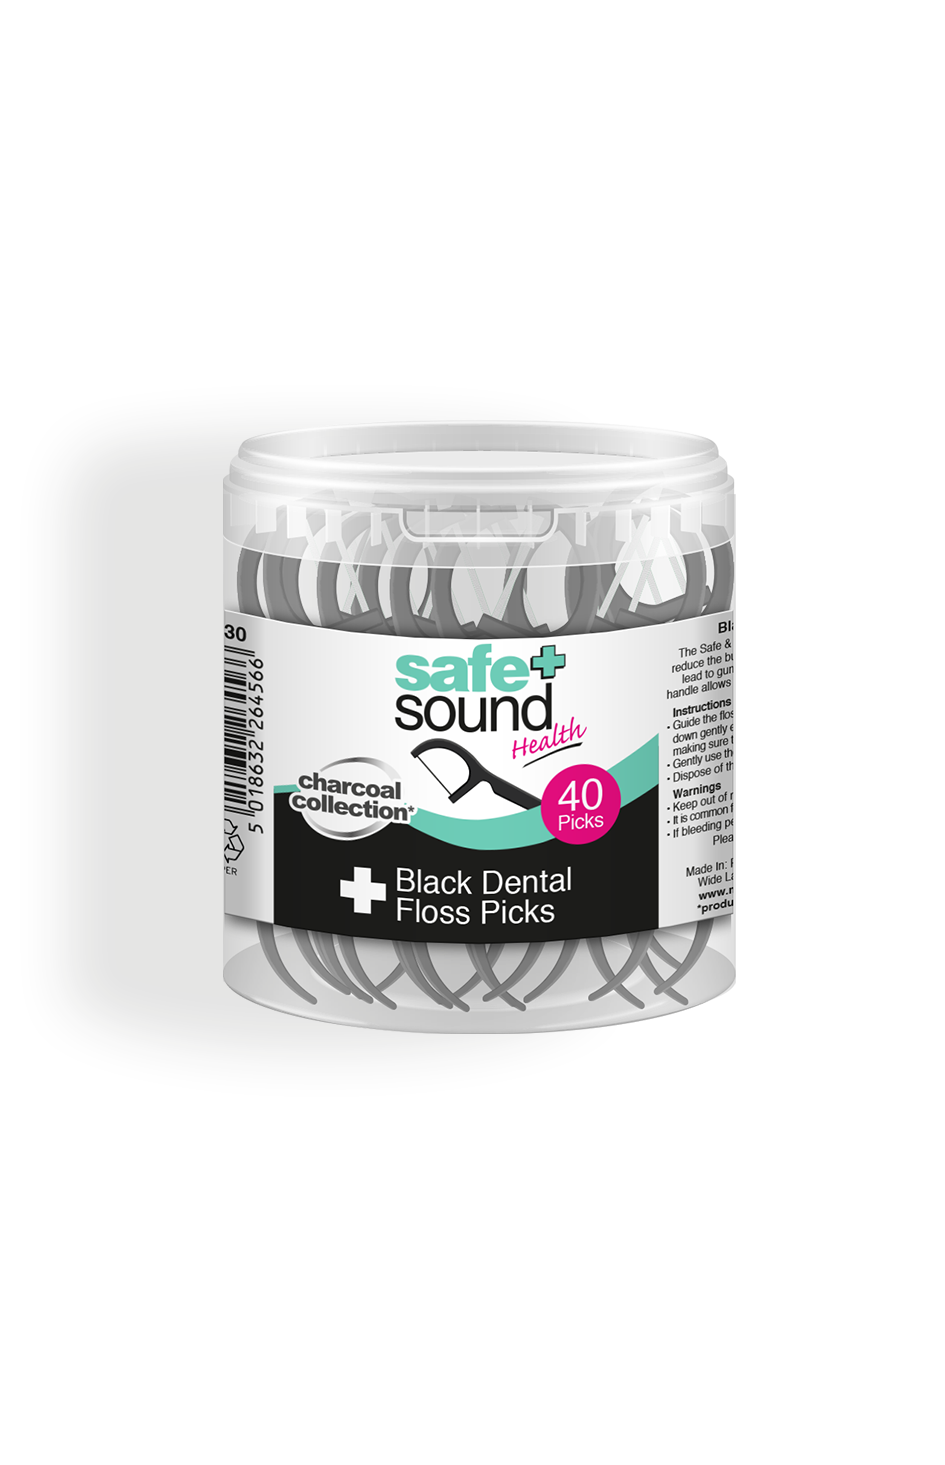 Safe and Sound Health Black Dental Floss Picks